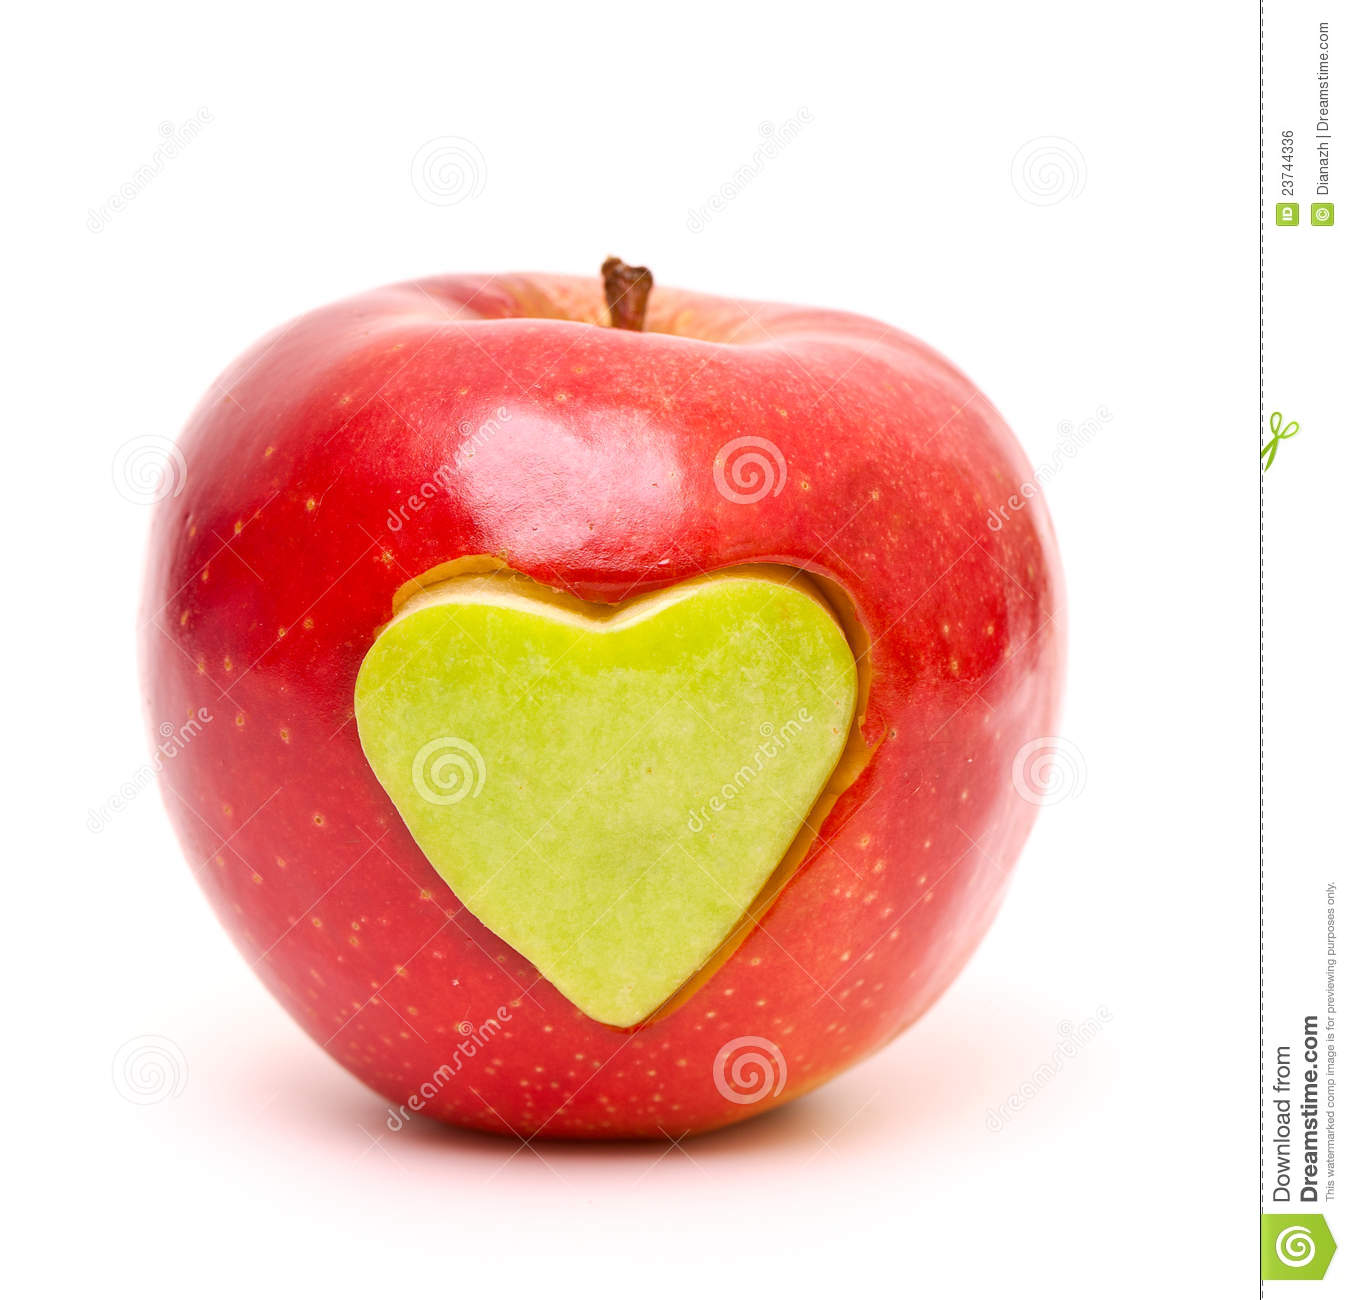 how to cut an apple into hearts